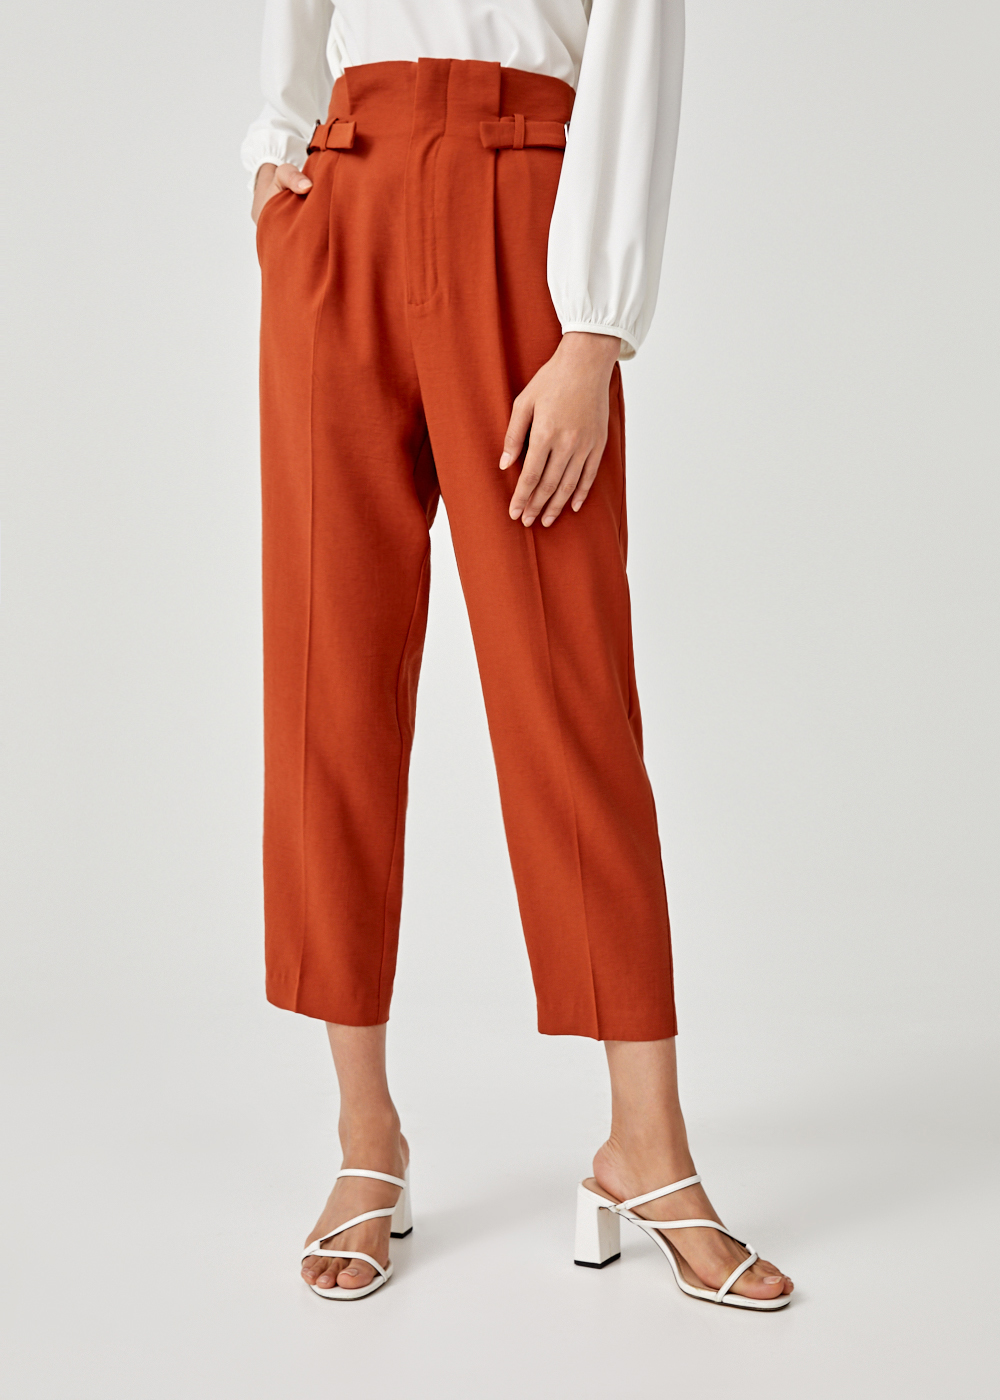 Ada Pleated Side Buckle Pants